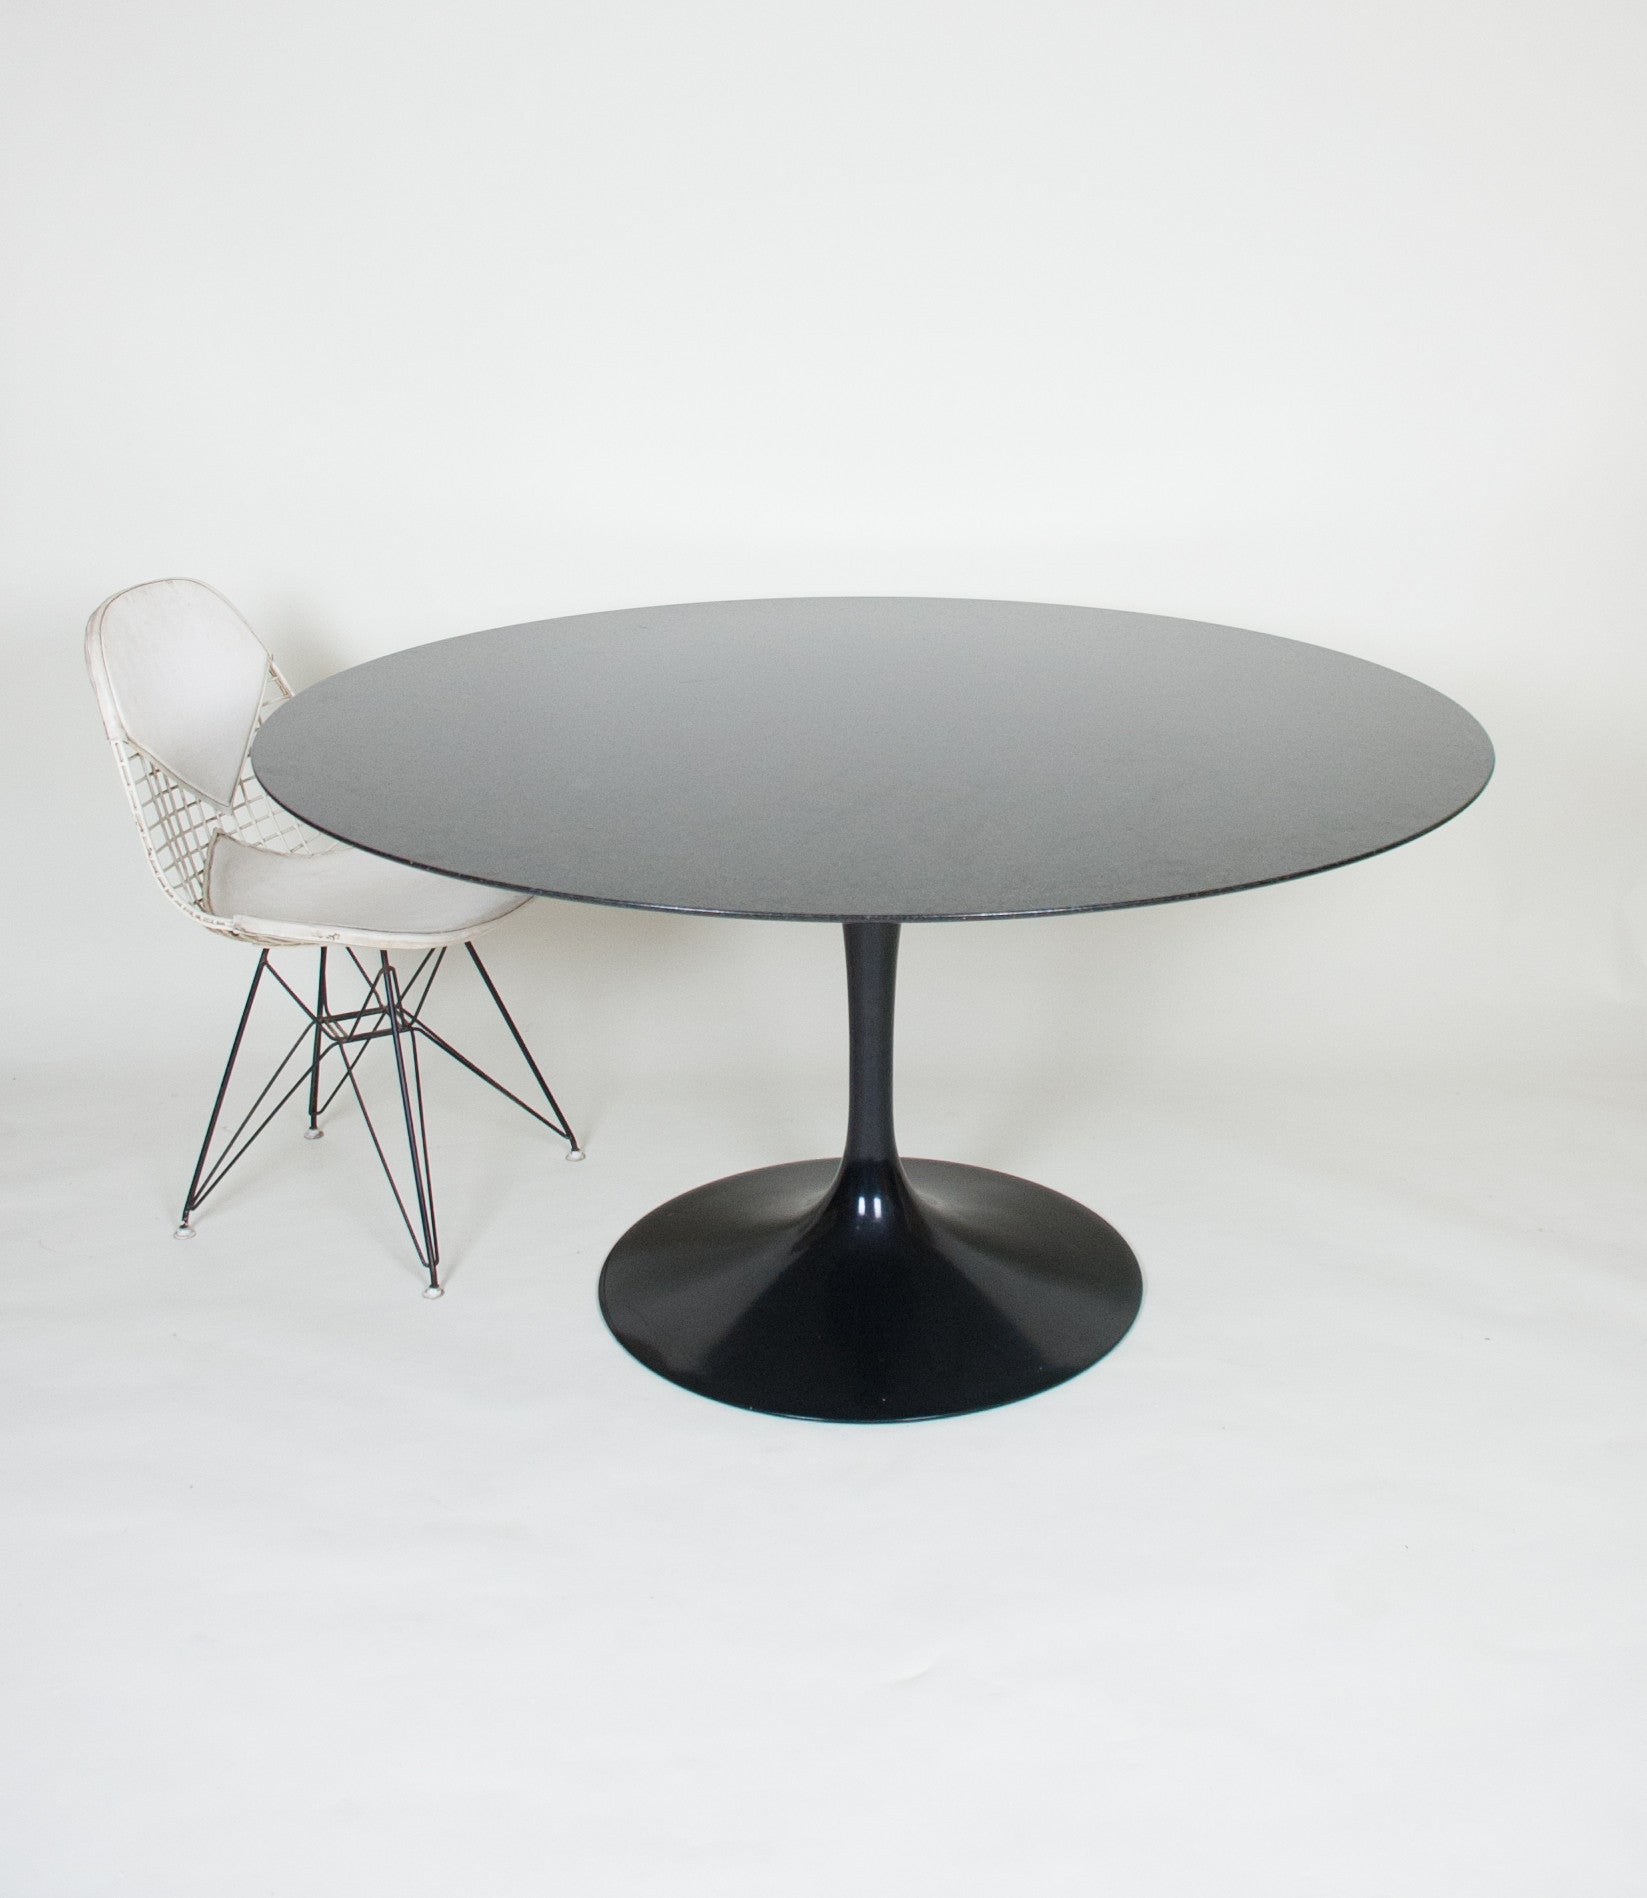 SOLD Eero Saarinen For Knoll 54 Inch Tulip Conference / Dining Table Granite, Like New!